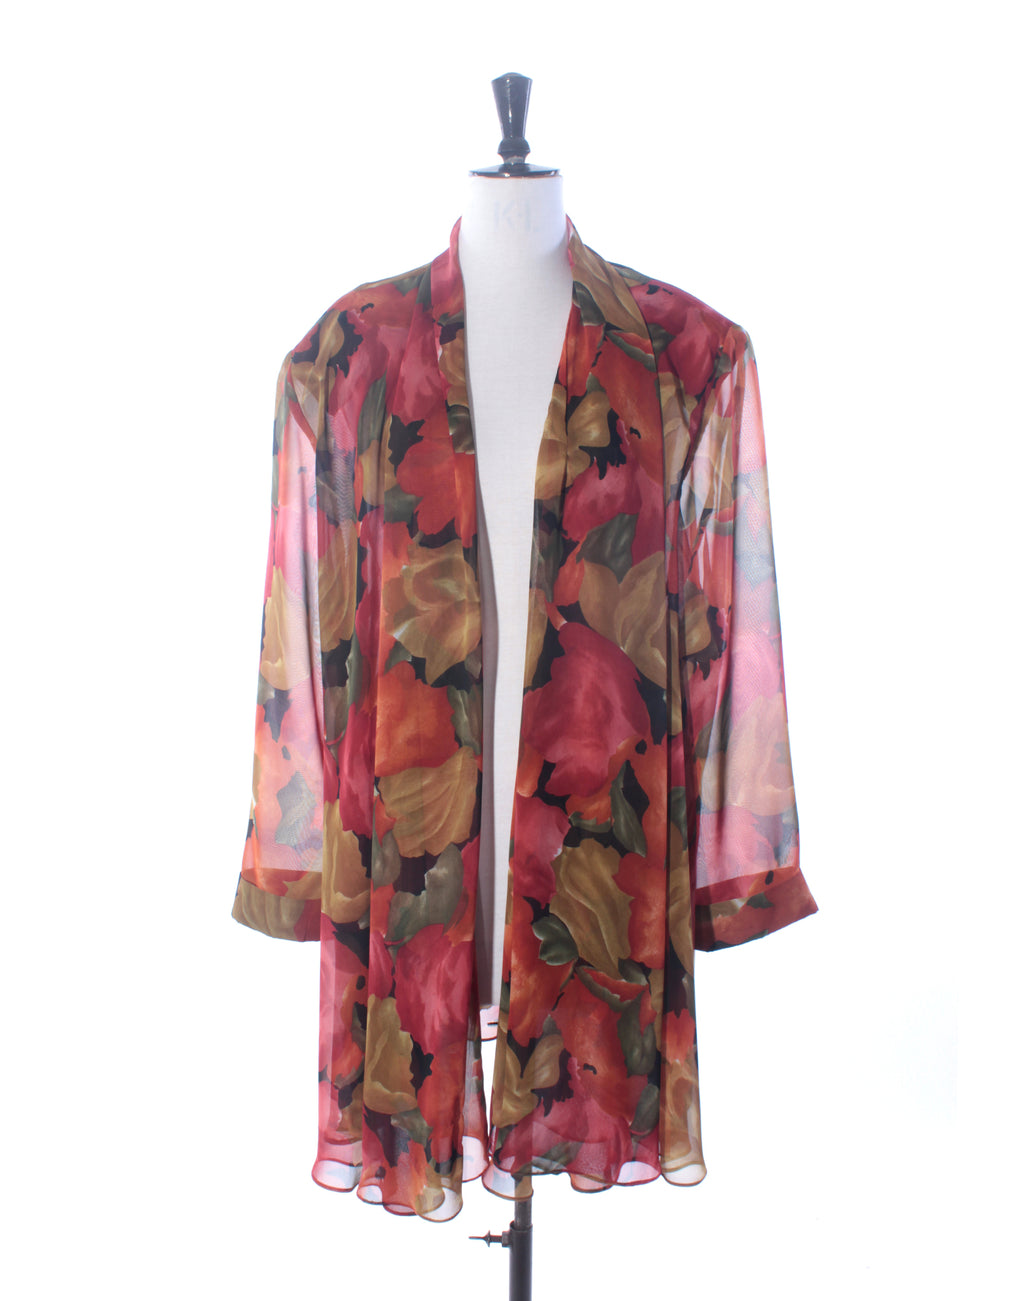 Rust Floral Oversize Shirt Jacket